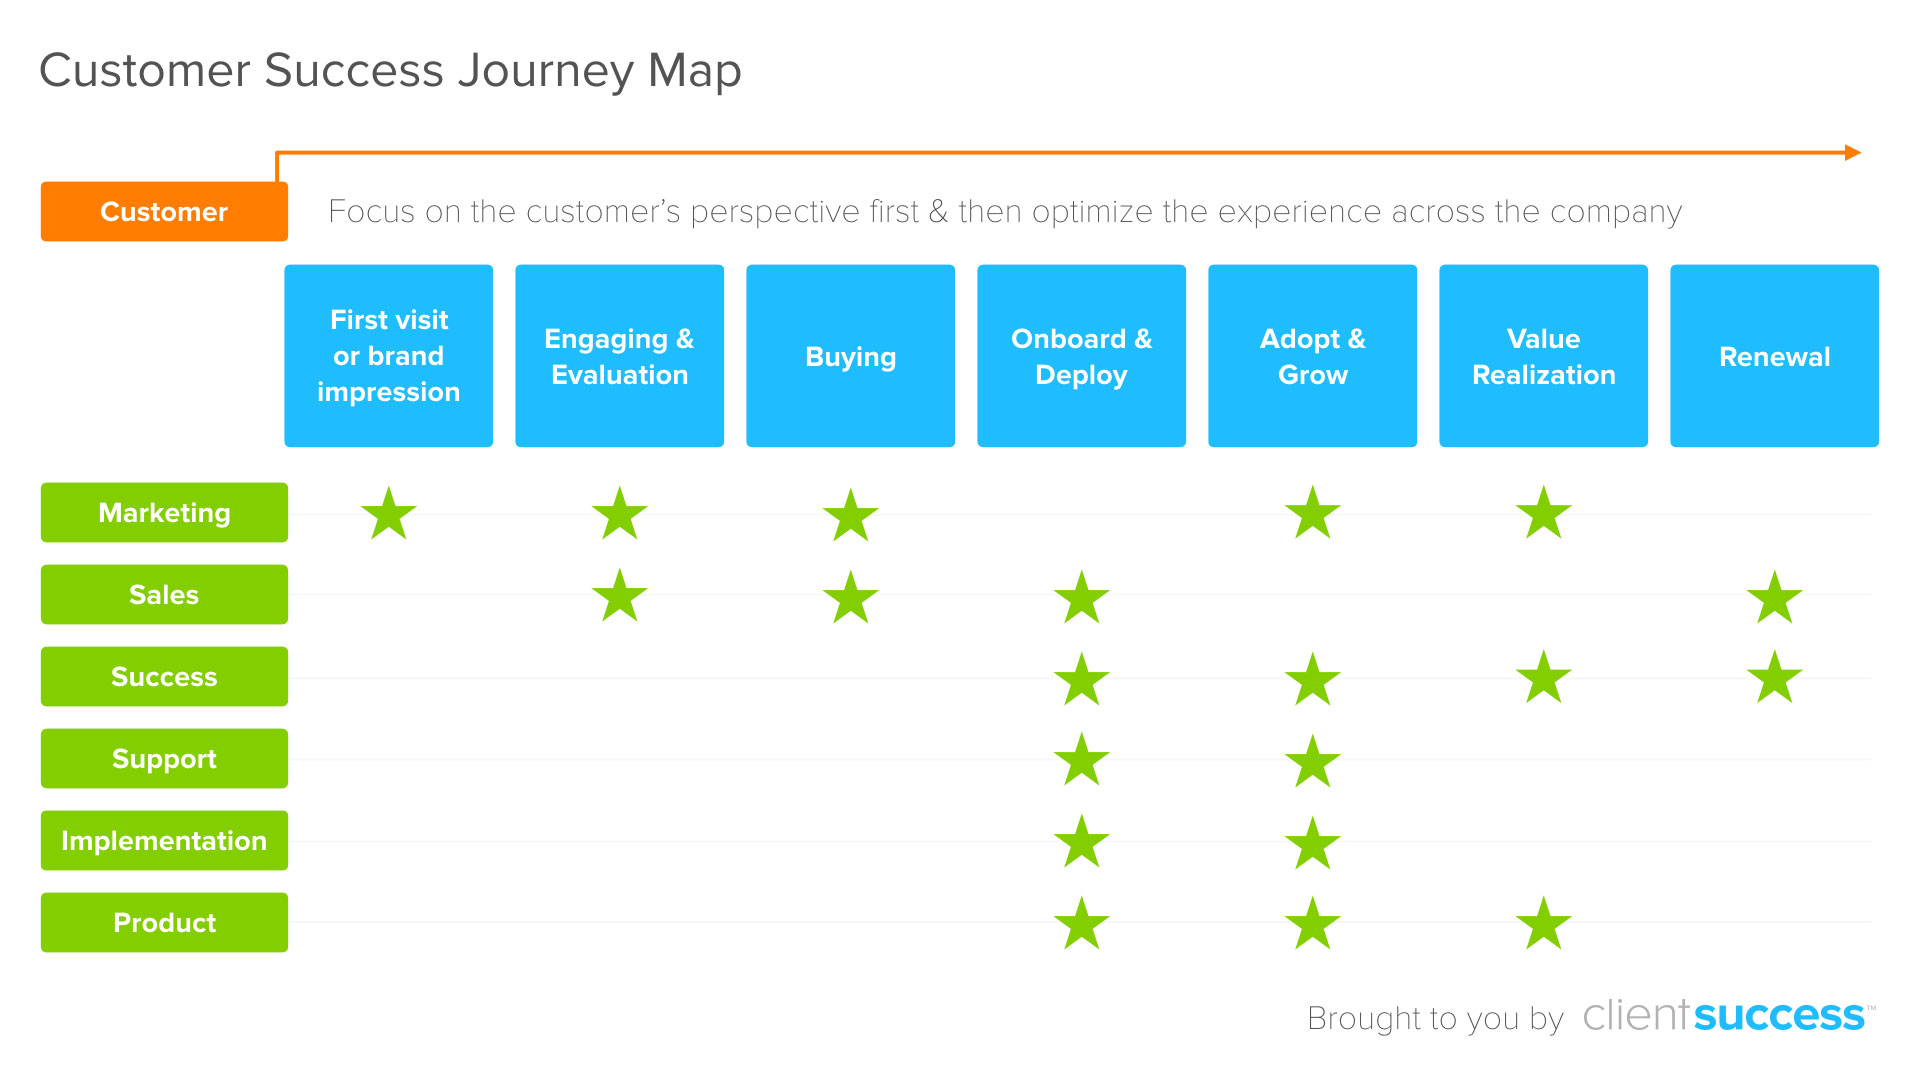 5 Best Practices To Build A Customer Success Journey Map